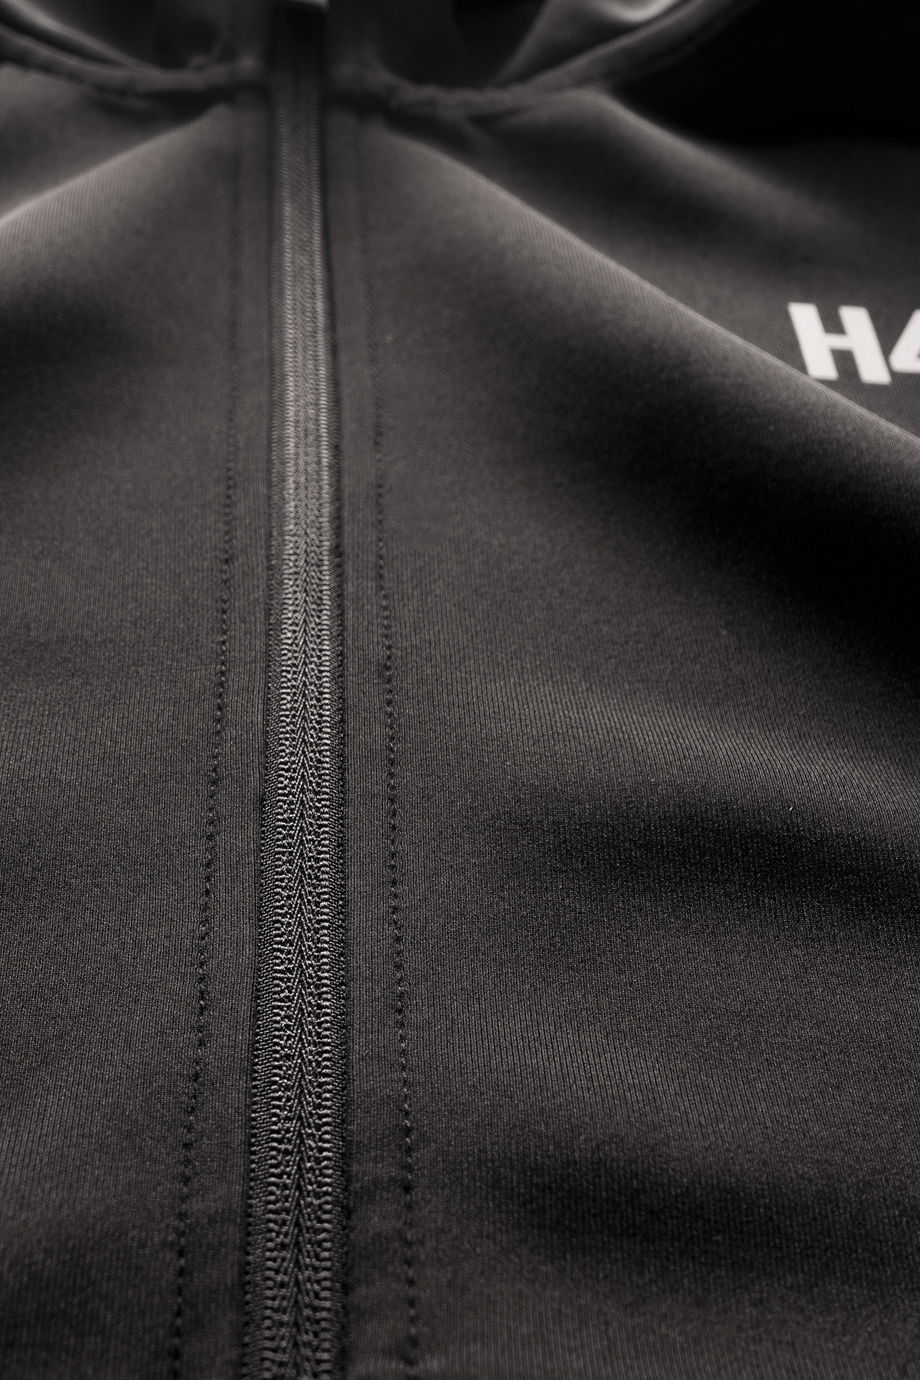 H4X COMPLEXITY PERFORMANCE HOODIE Black details2